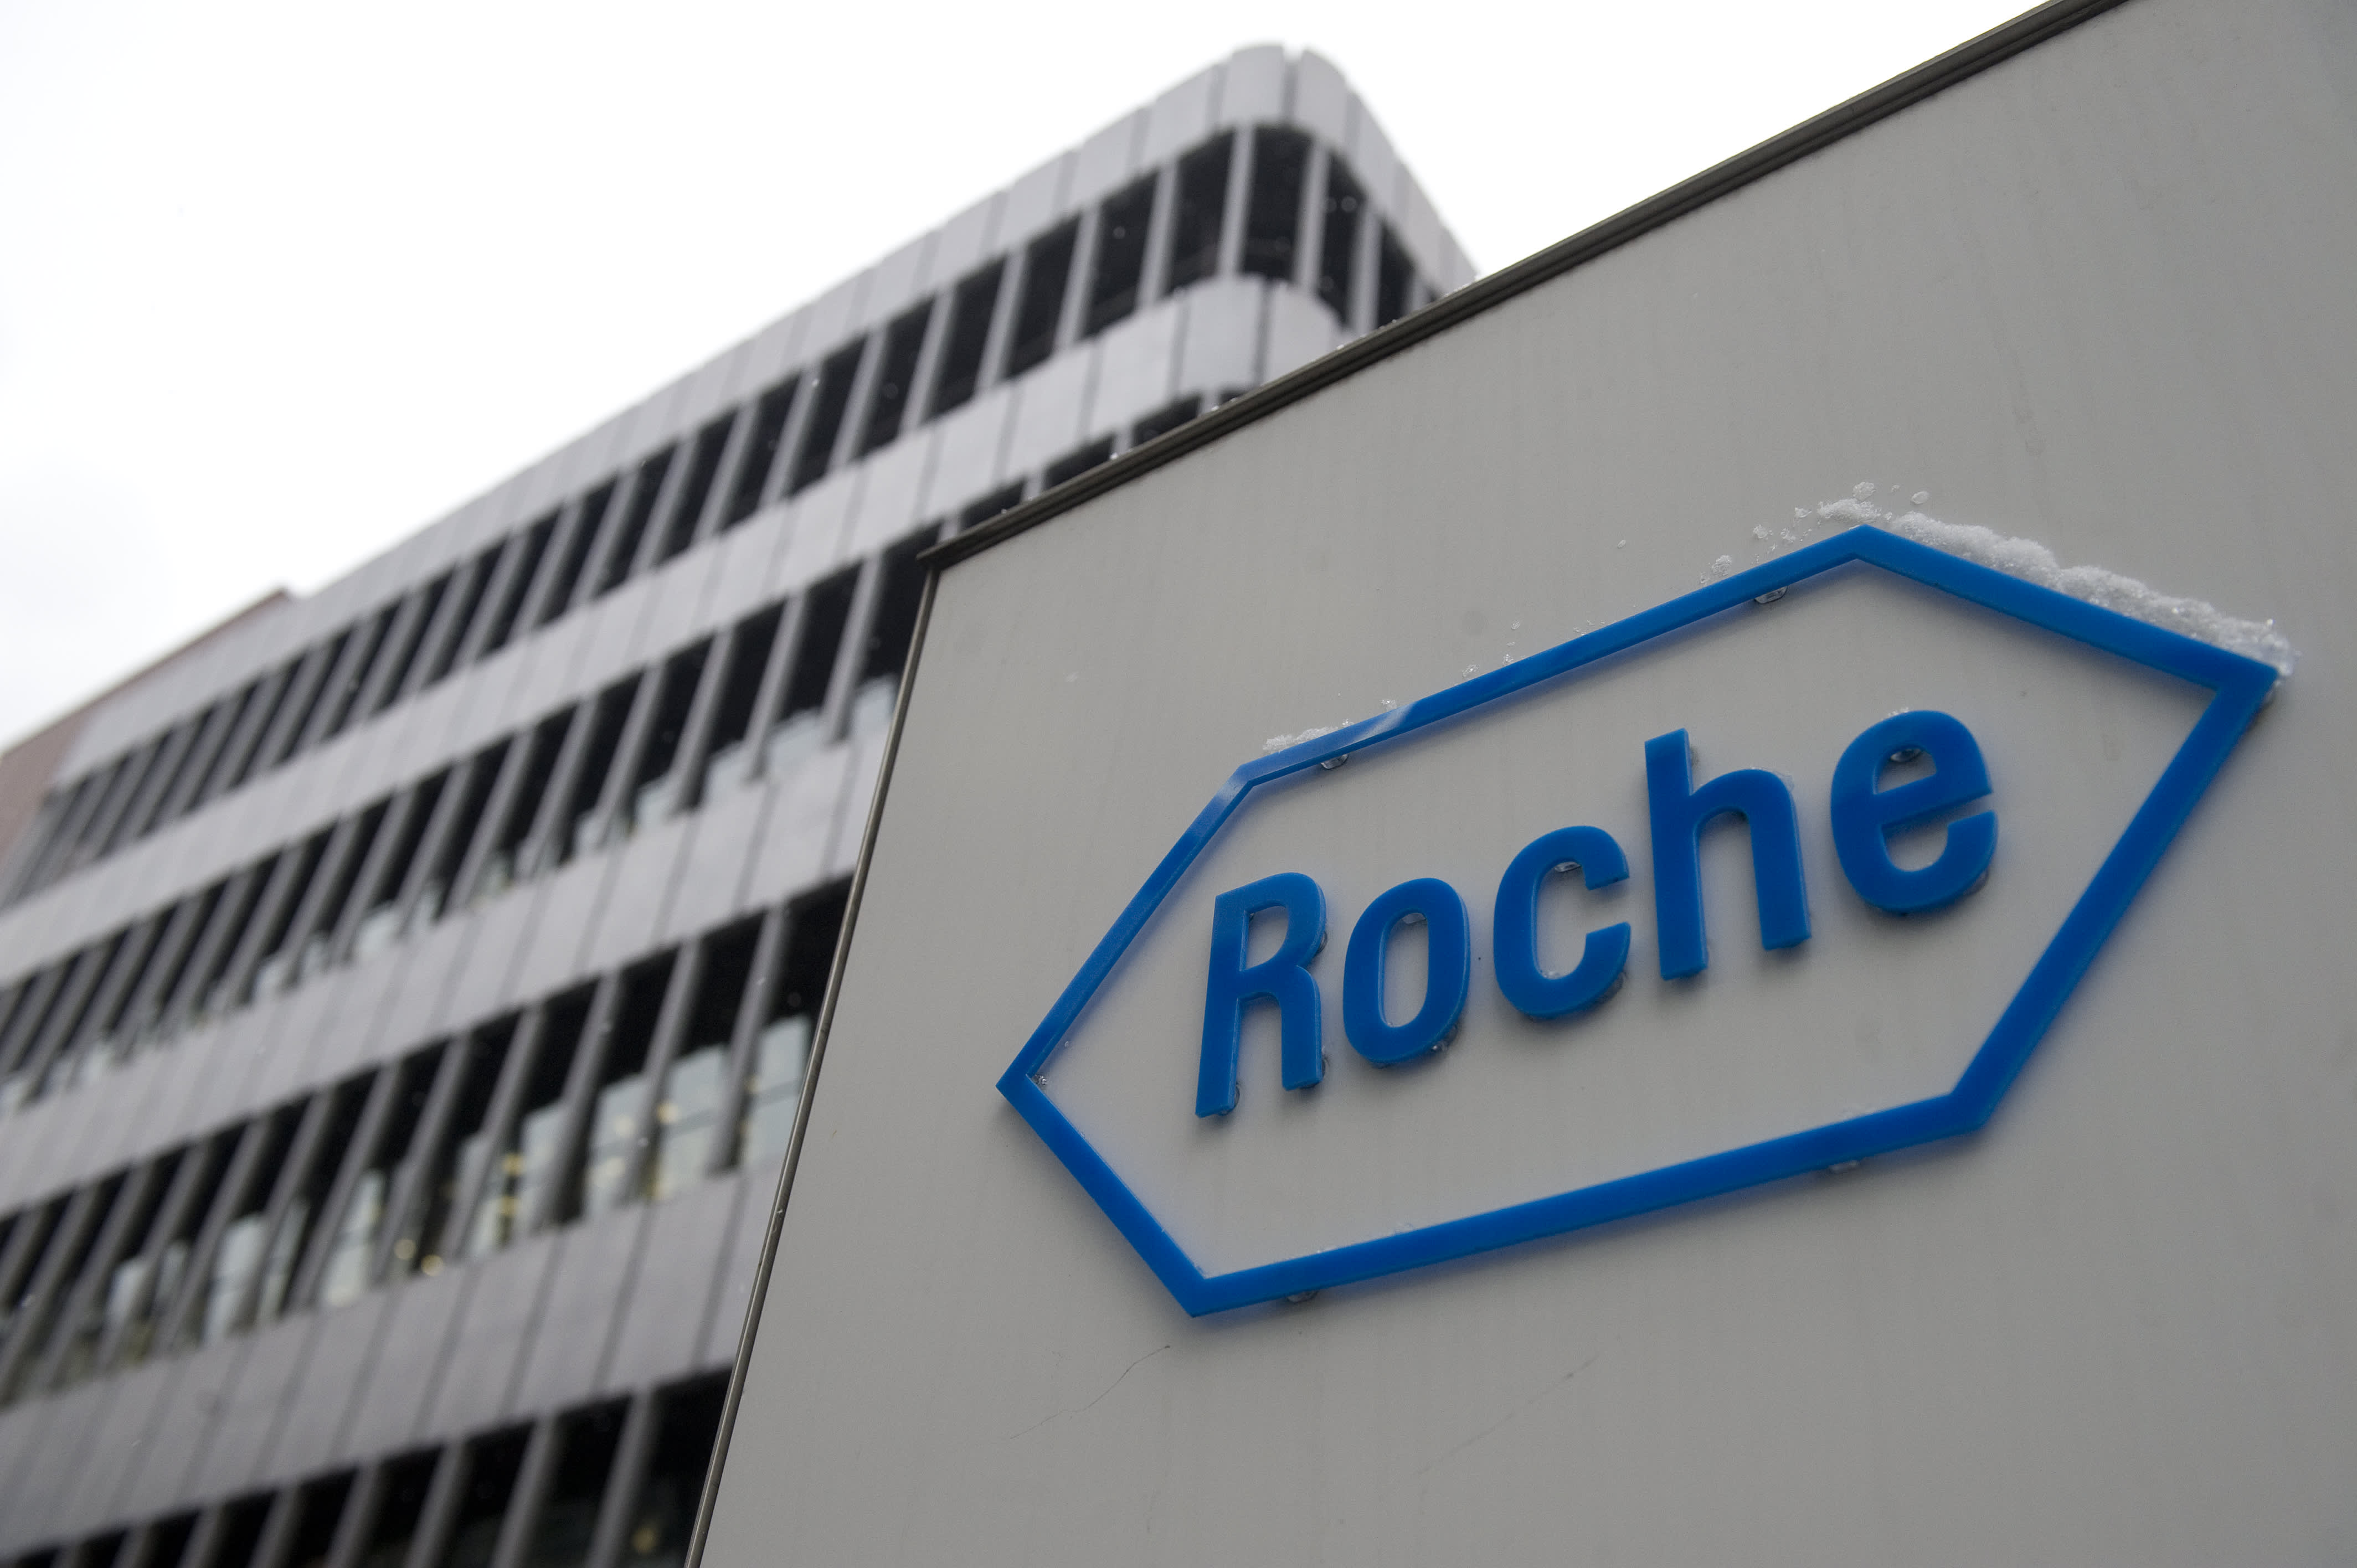 Shares of Swiss drugmaker Roche up 11% after FDA approval